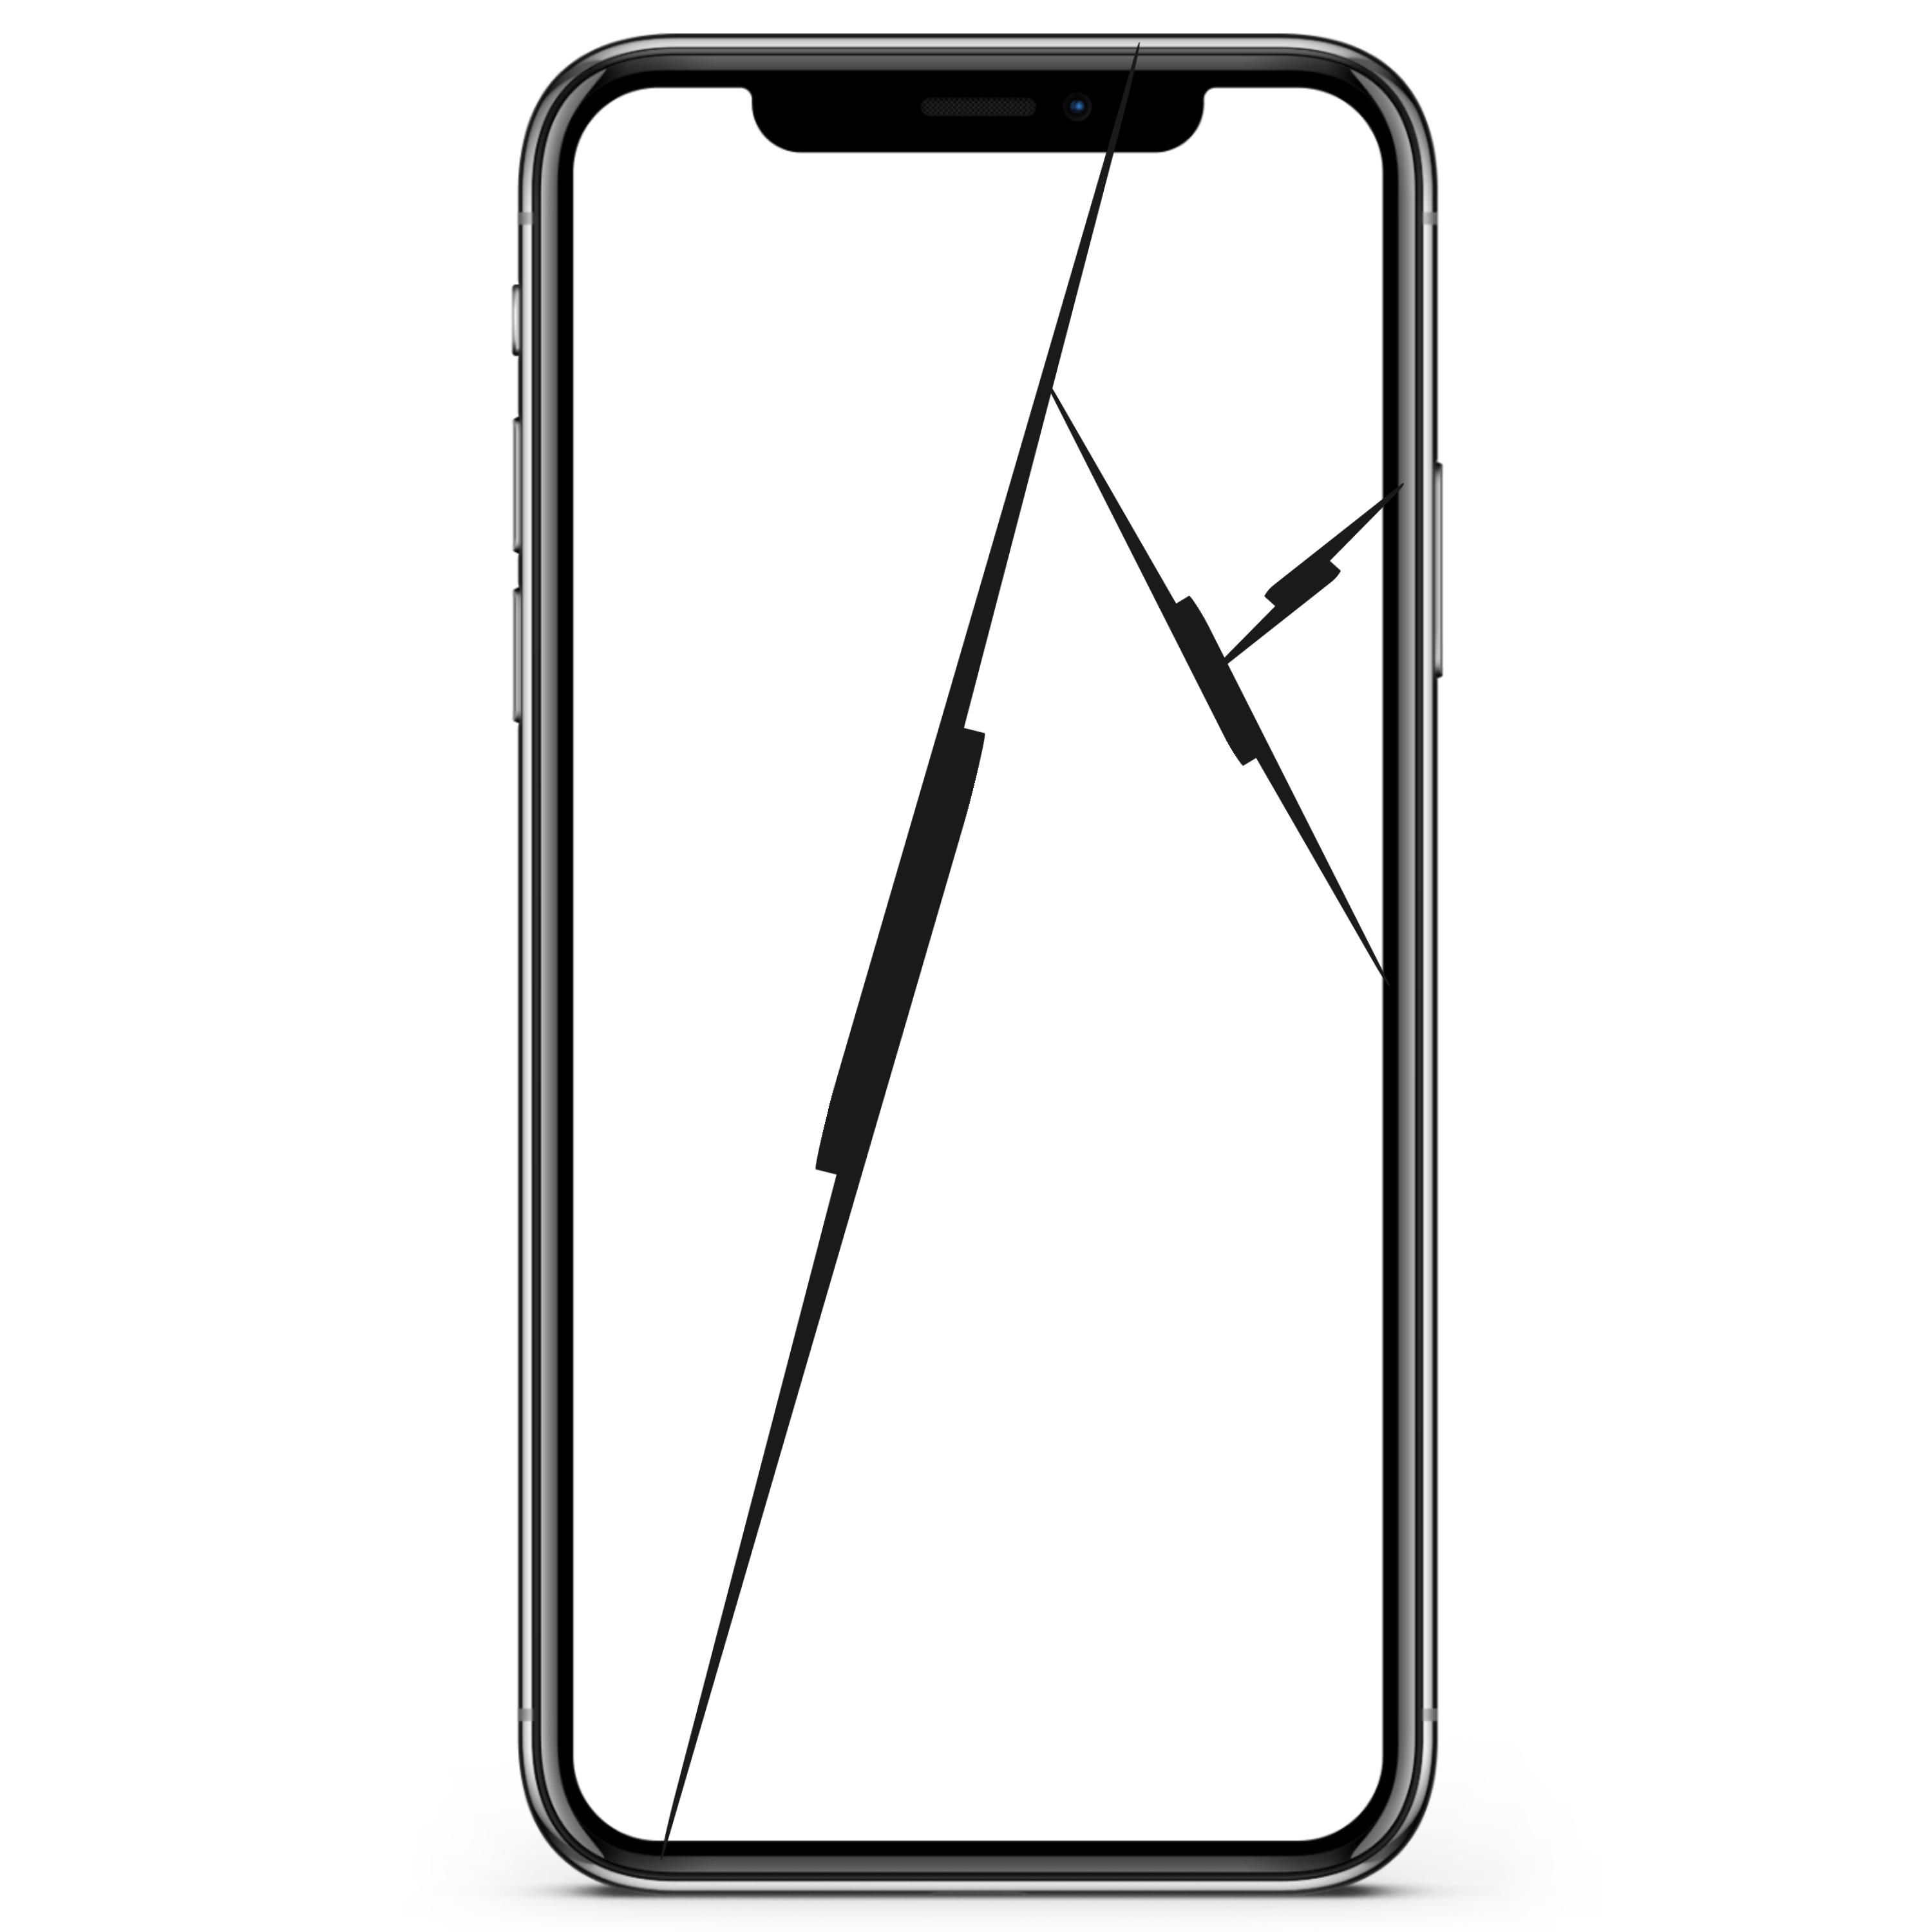 iPhone 11 Pro Max Rear Glass Replacement